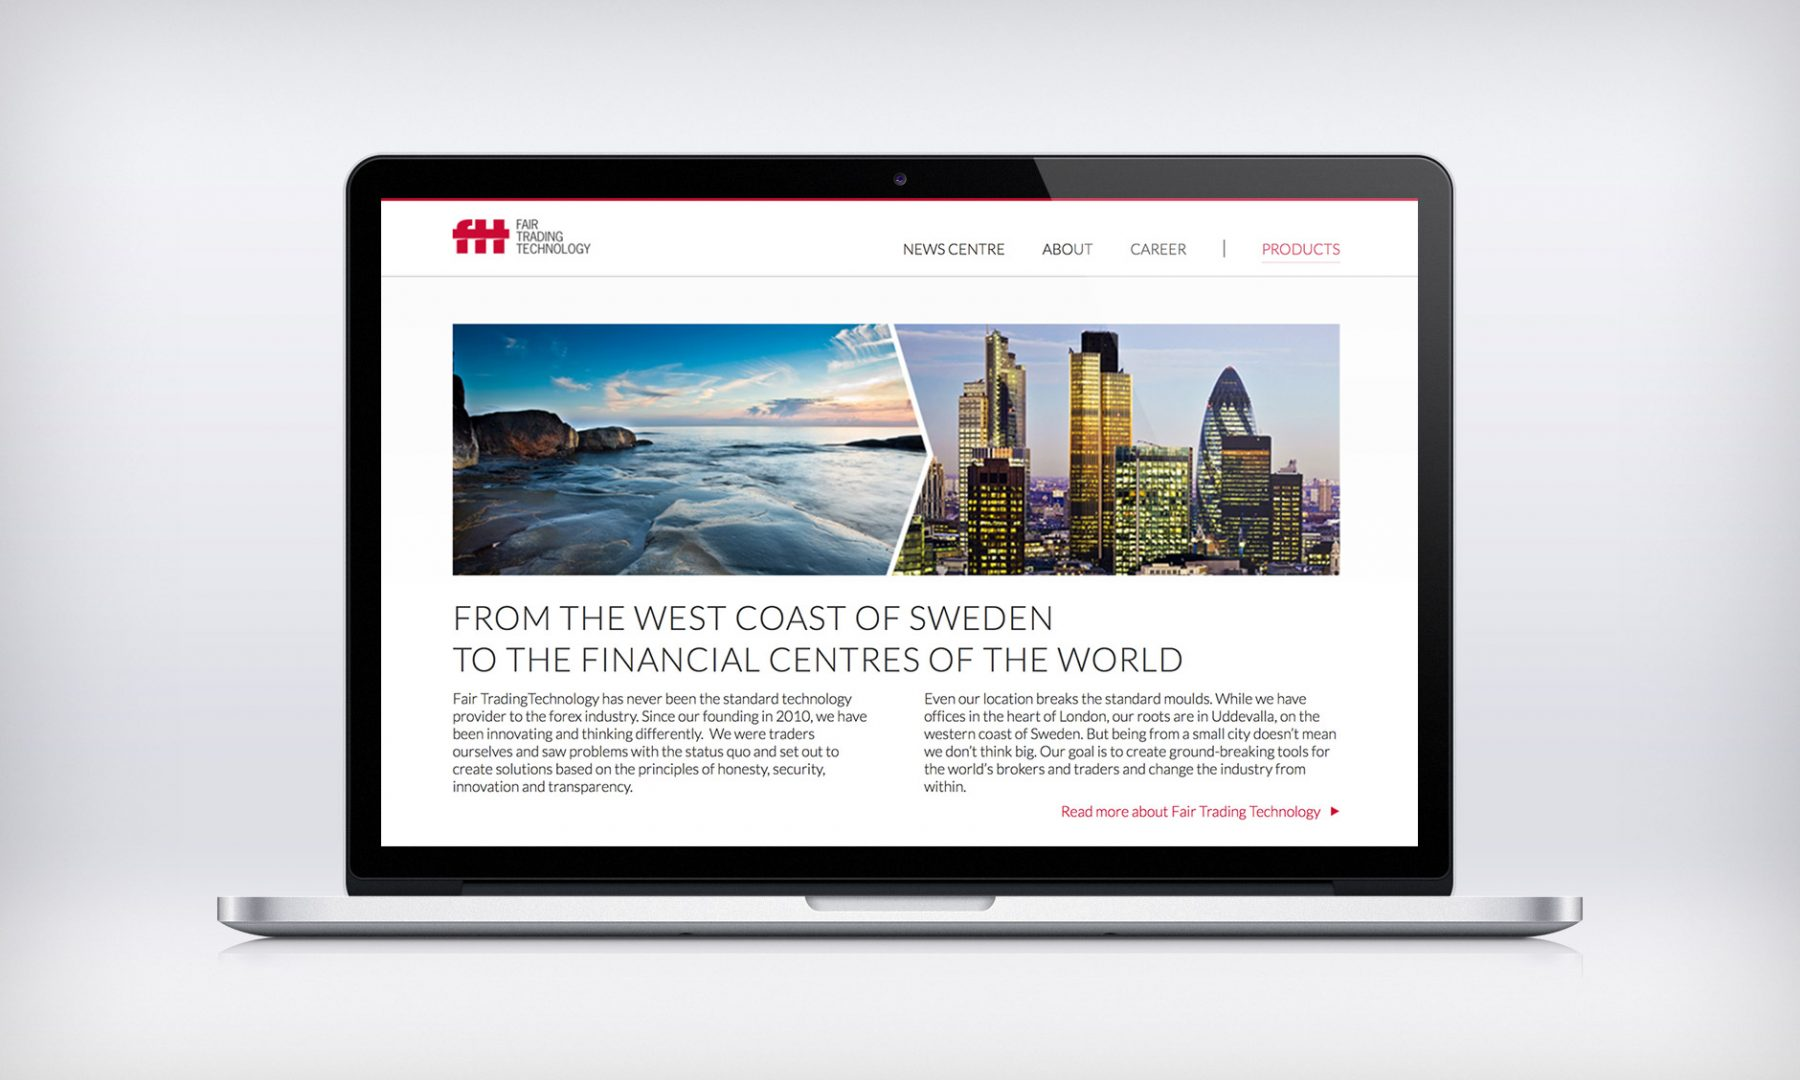 Fair Trading Technology's Corporate home page, which was separated from the rest of the site to keep visitors focused on the product.